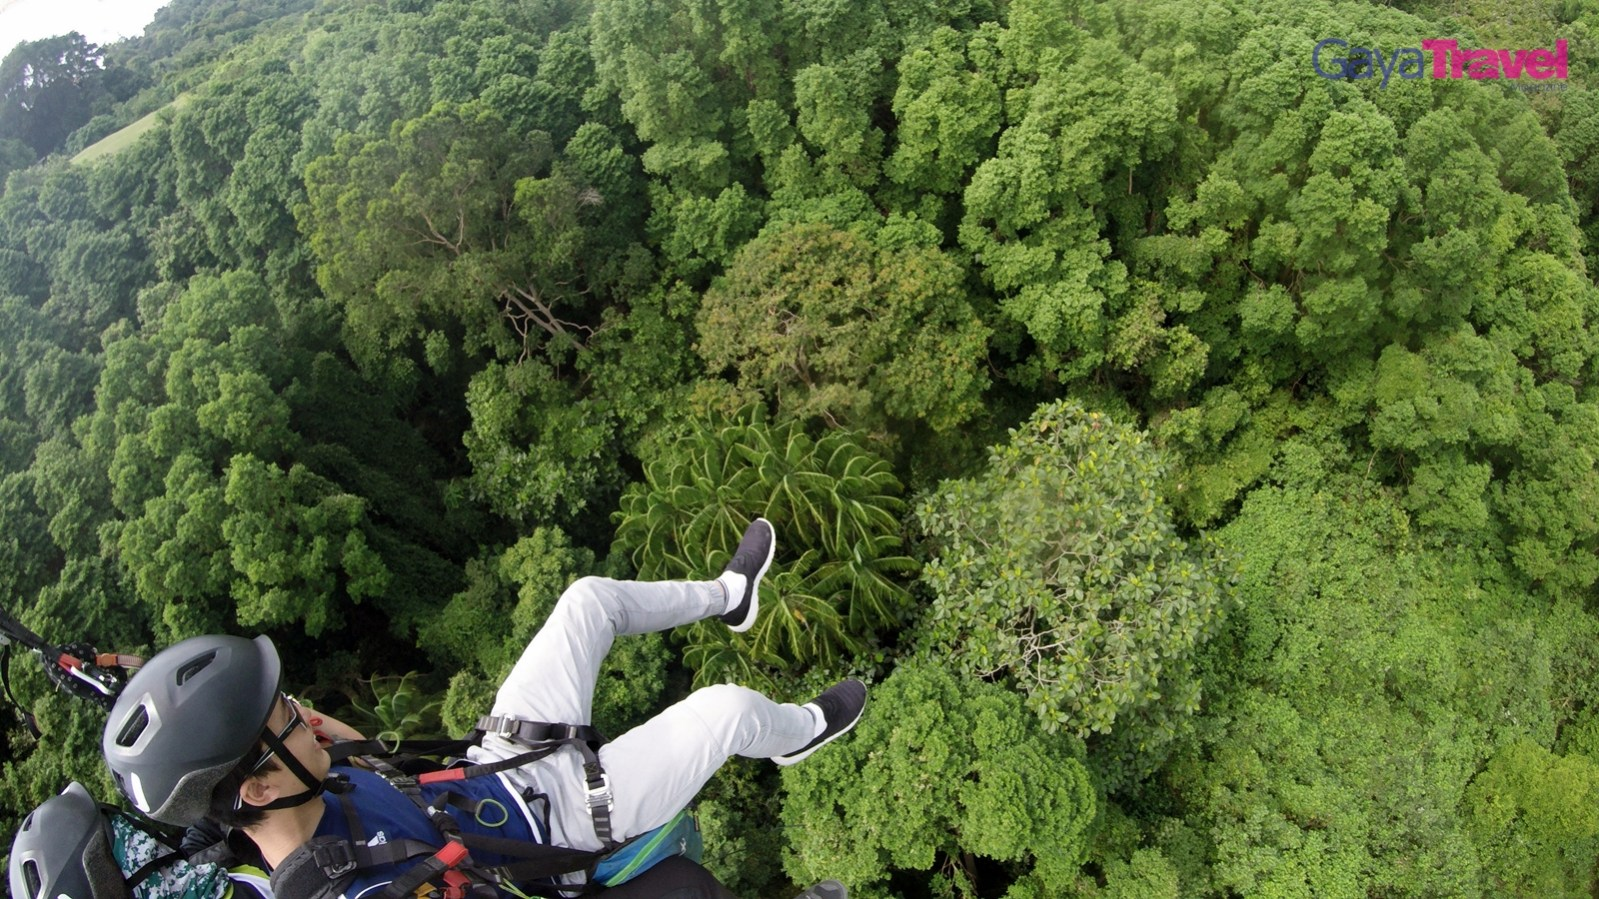 The writer enjoying the lush green forest view from above during the flight.